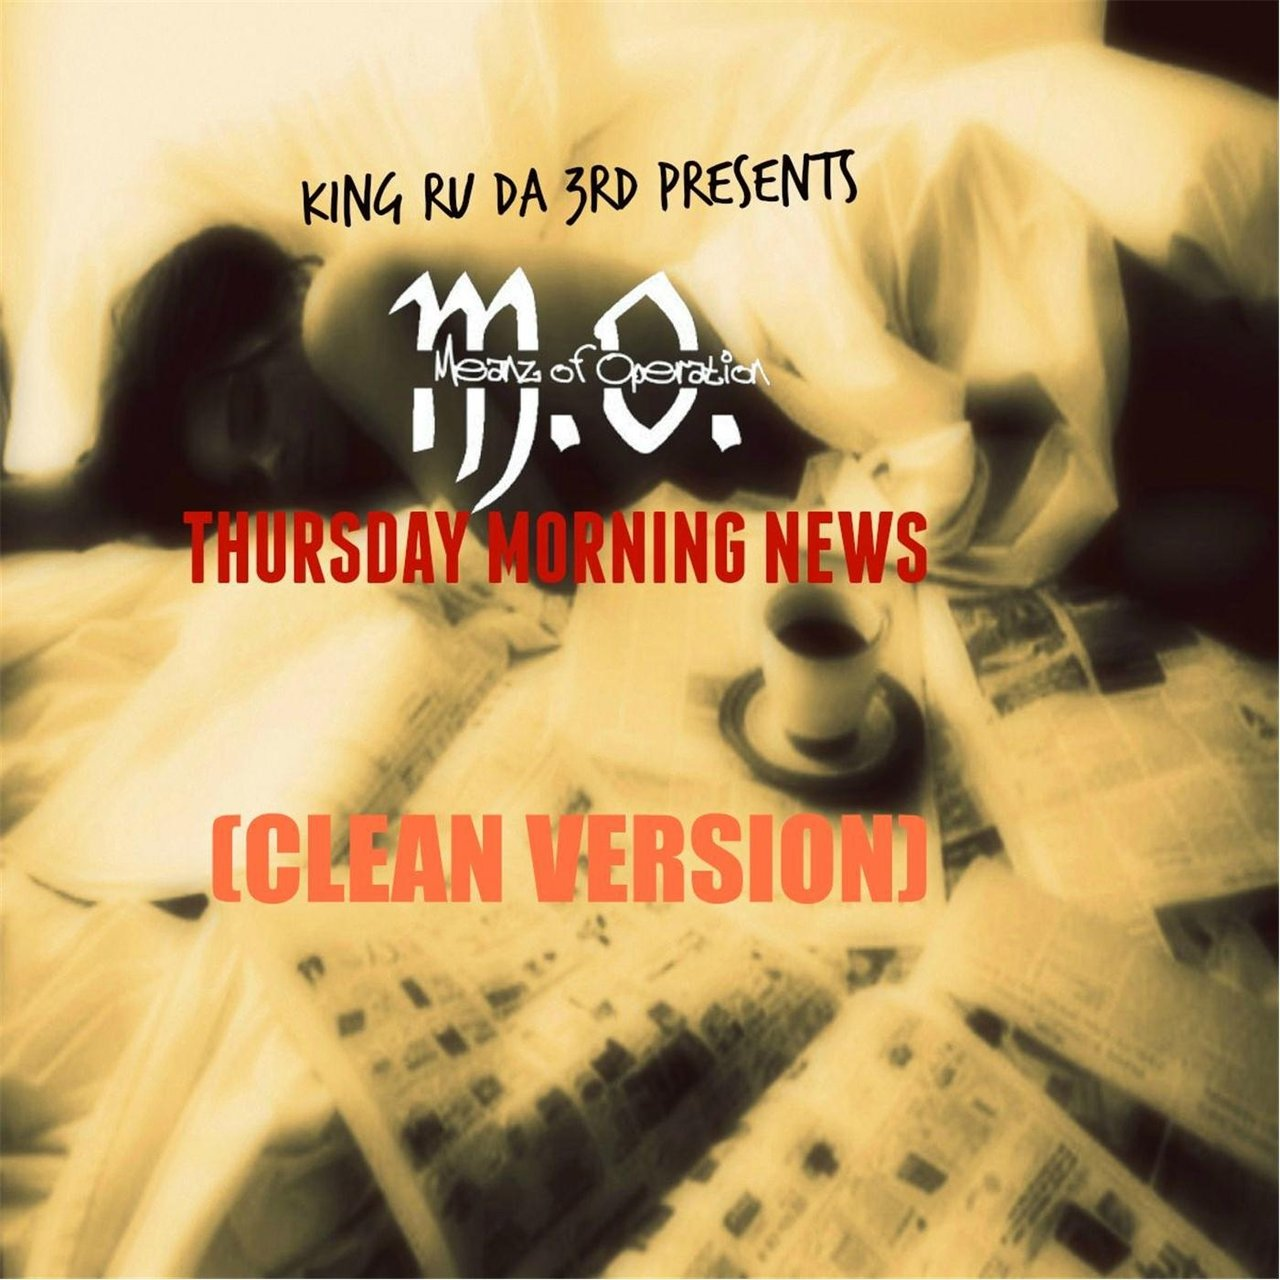 Thursday Morning News (Radio Edit) [feat. King Ru da 3rd]